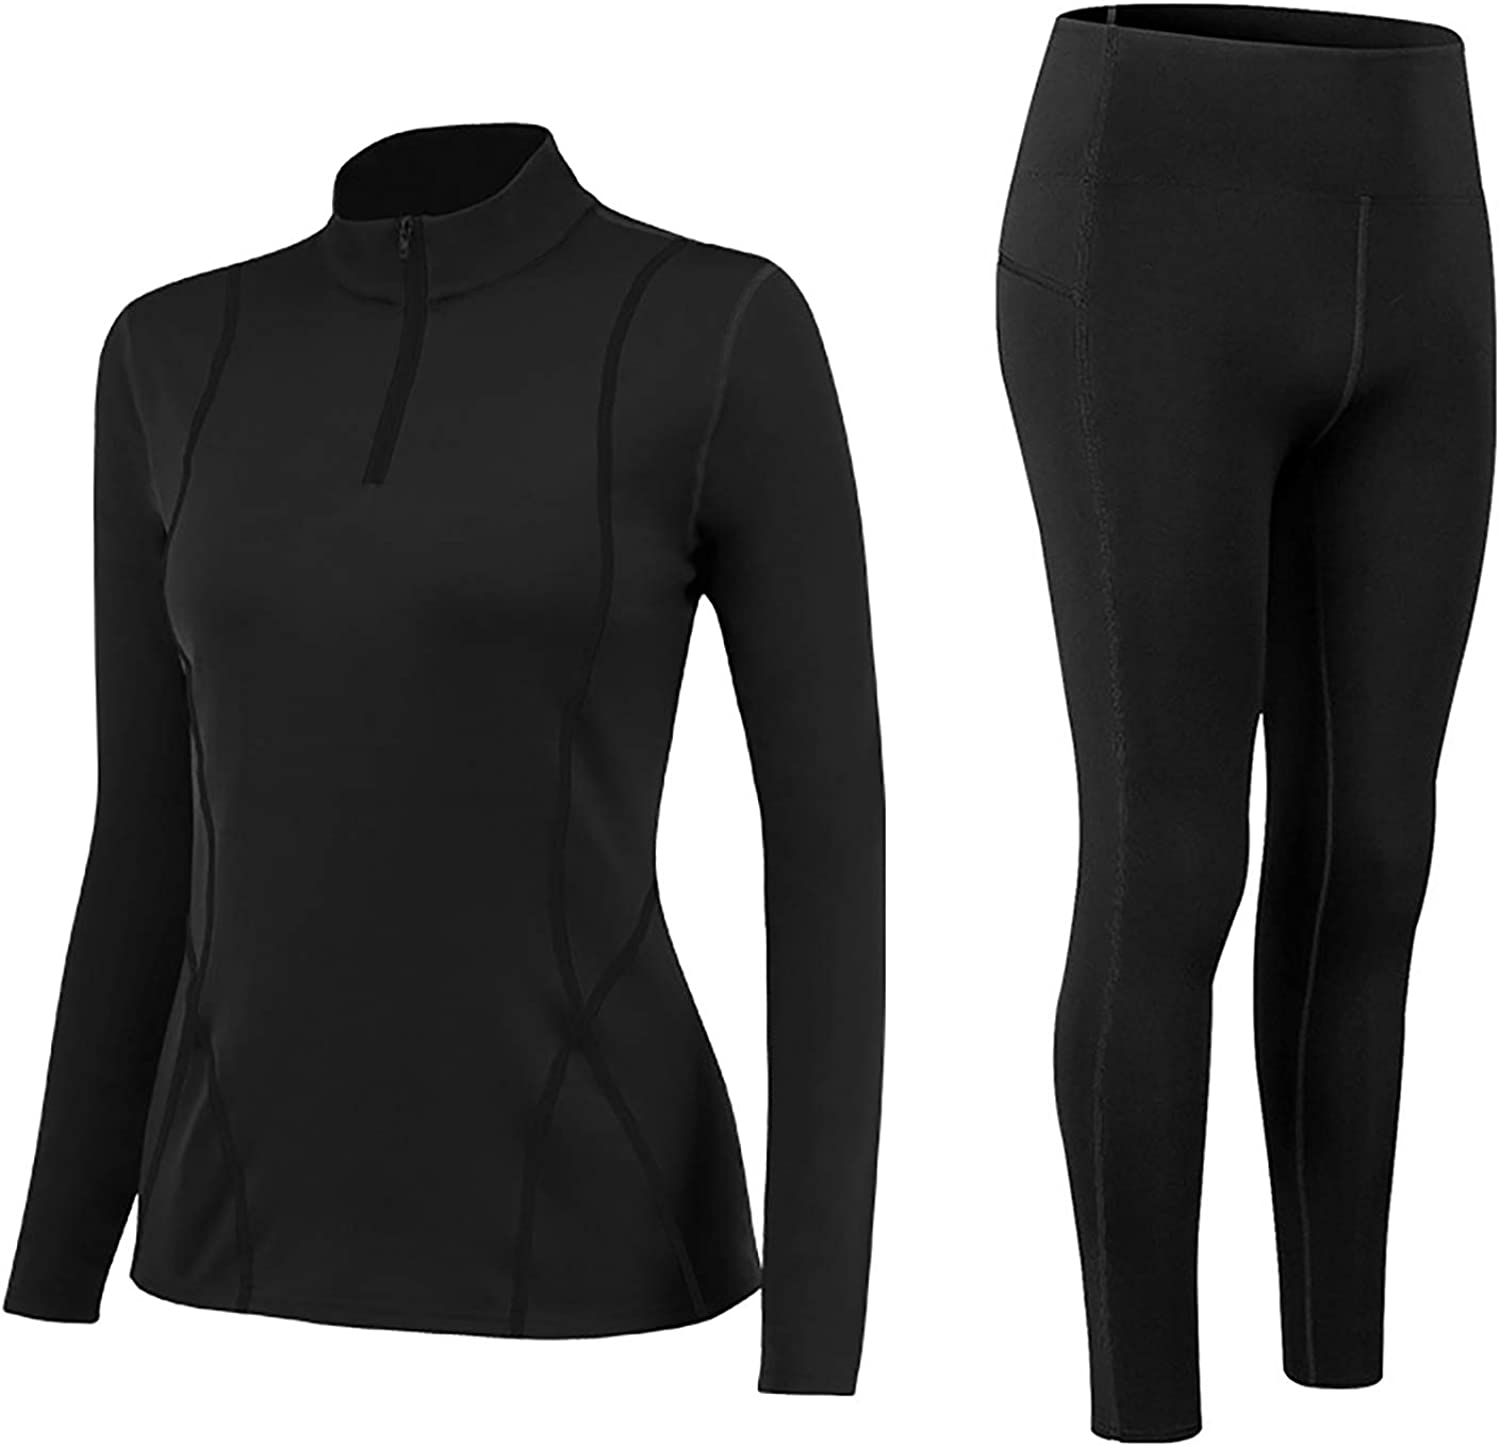 HUIHE Thermal Underwear for Women, Winter Base Layer Top & Bottom Set Long Johns with Fleece Lined